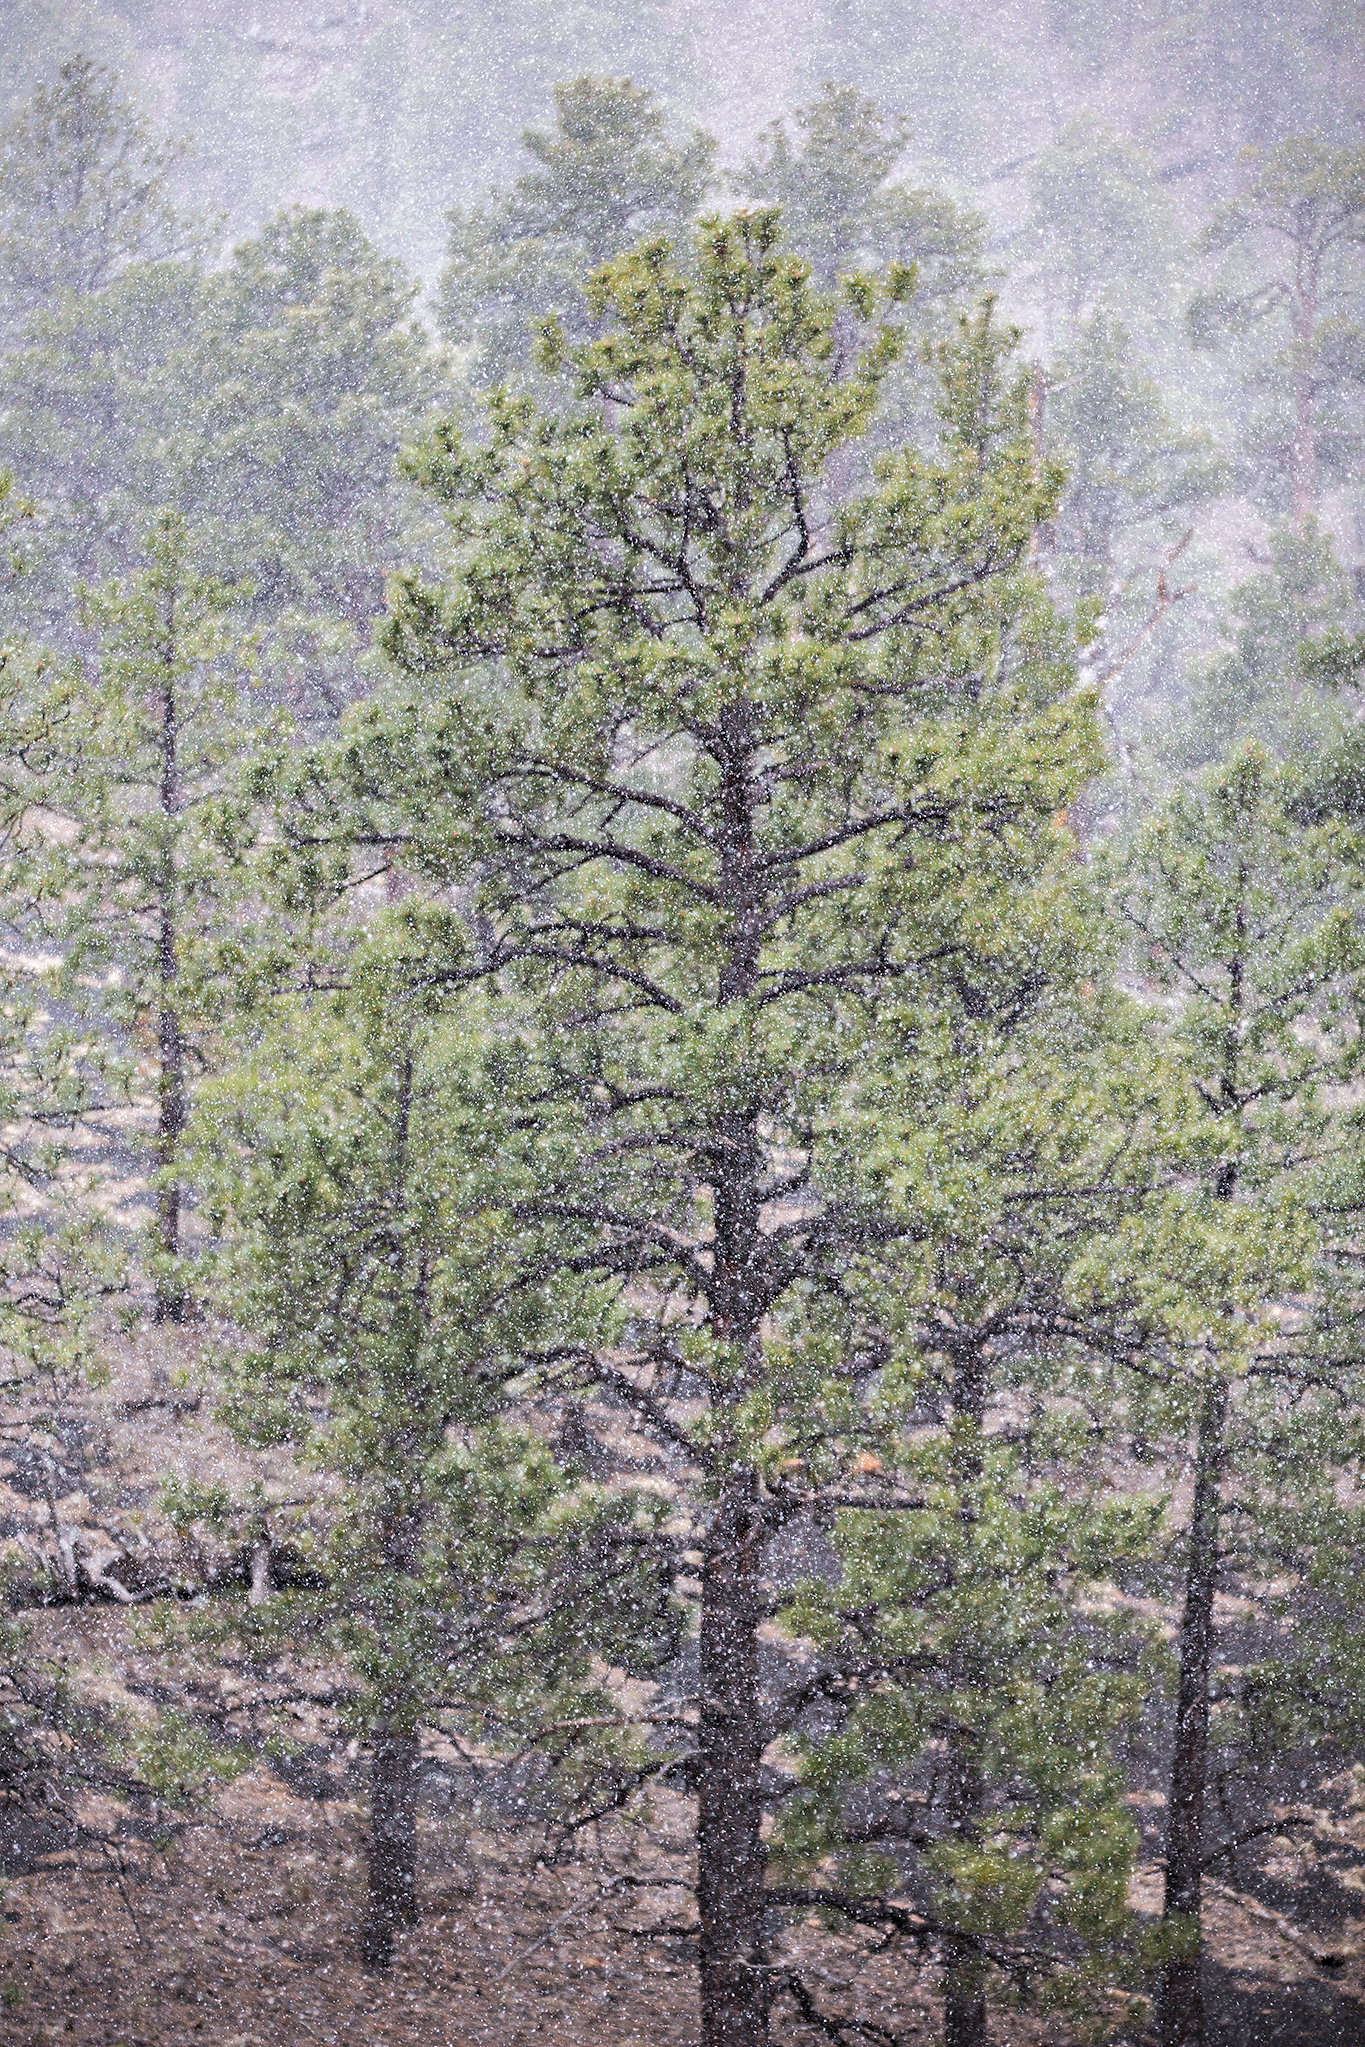 Snow falling around Pinus ponderosa